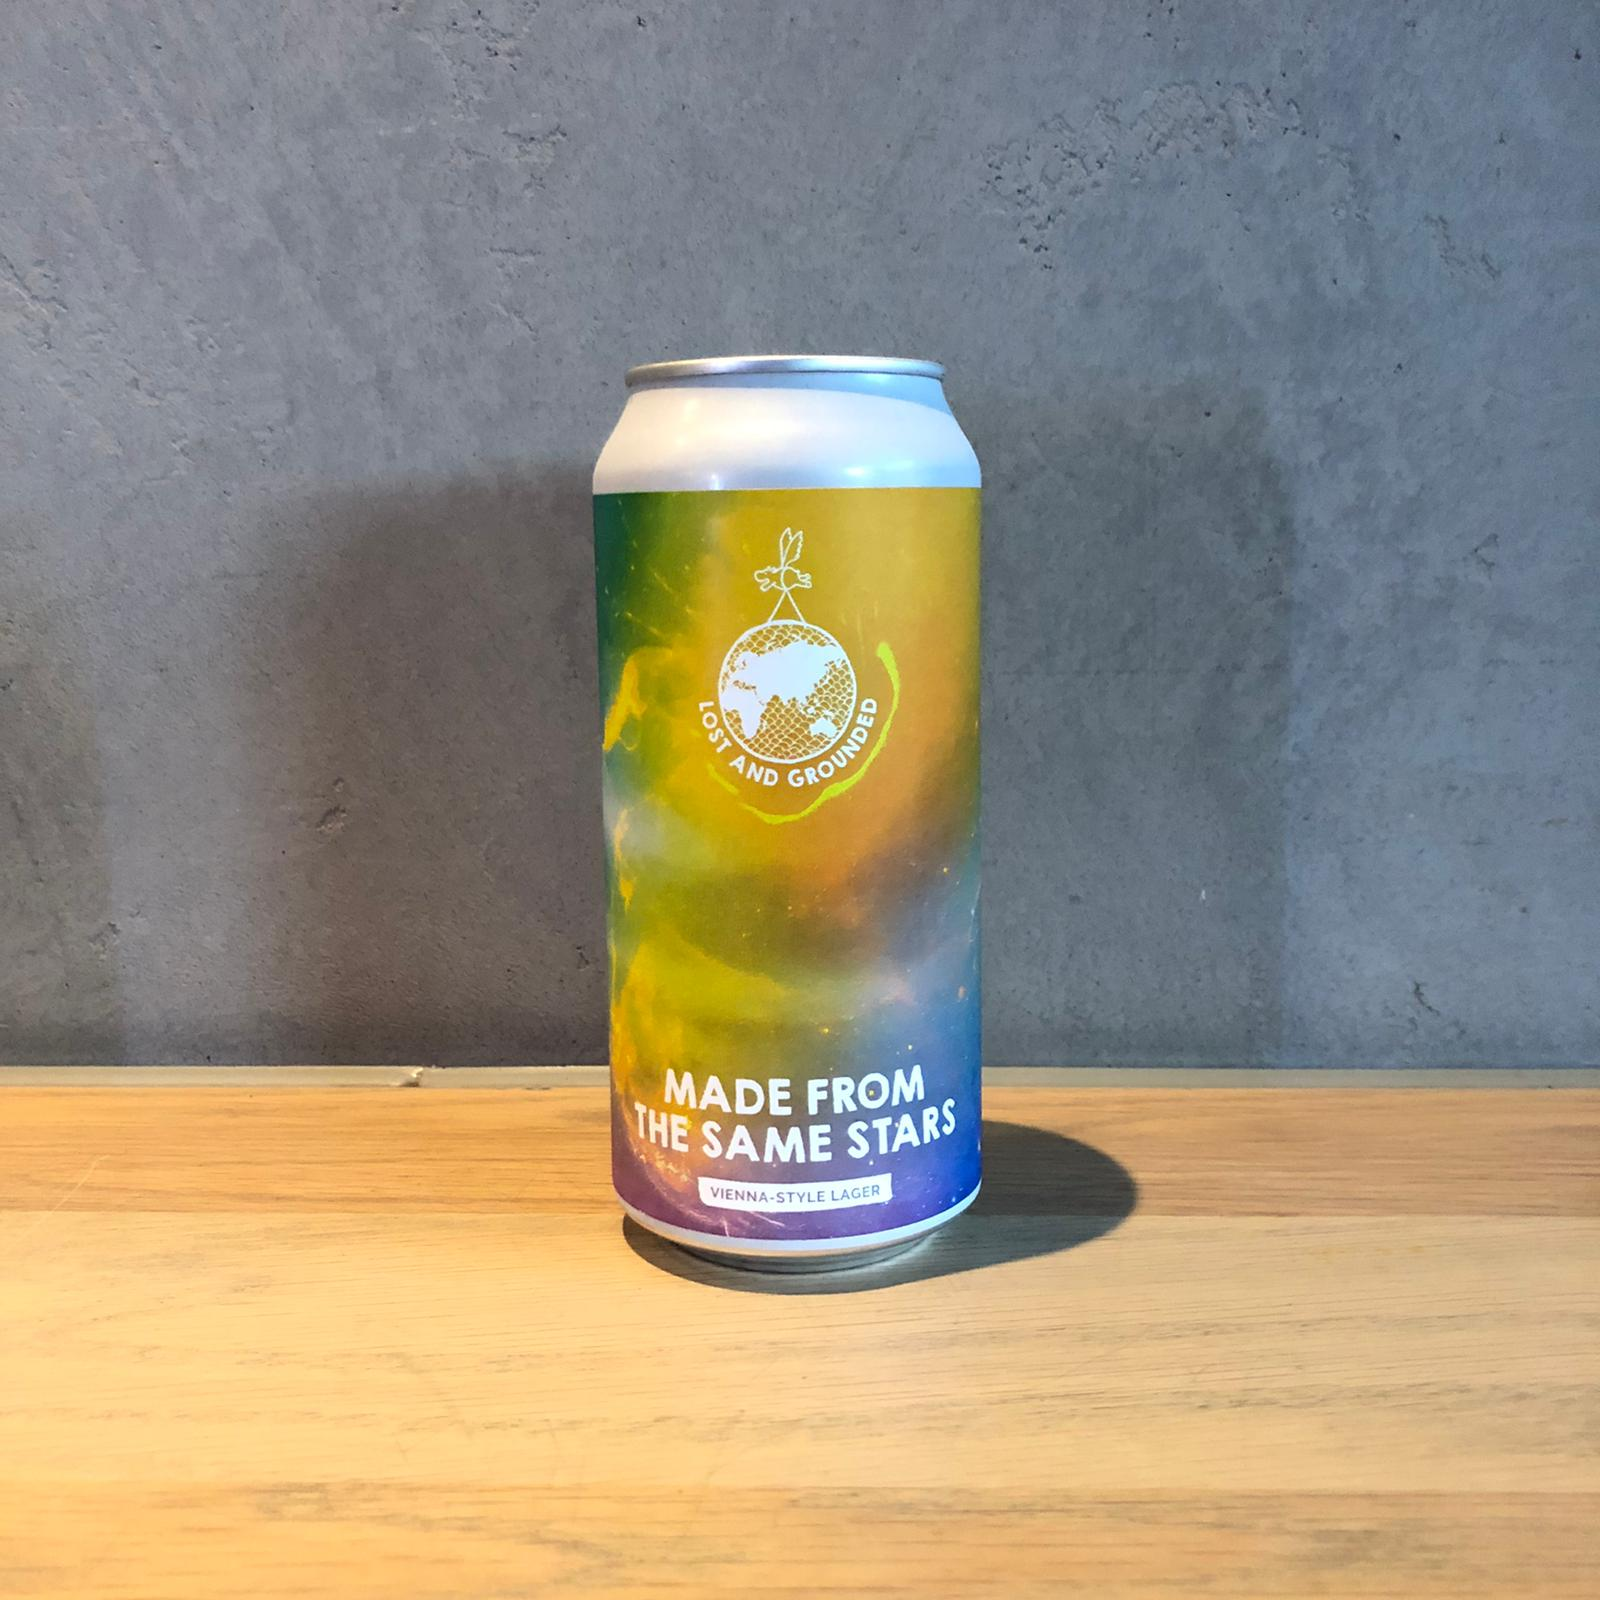 Lost and grounded Made from the same stars Lager 4.8% 440ml